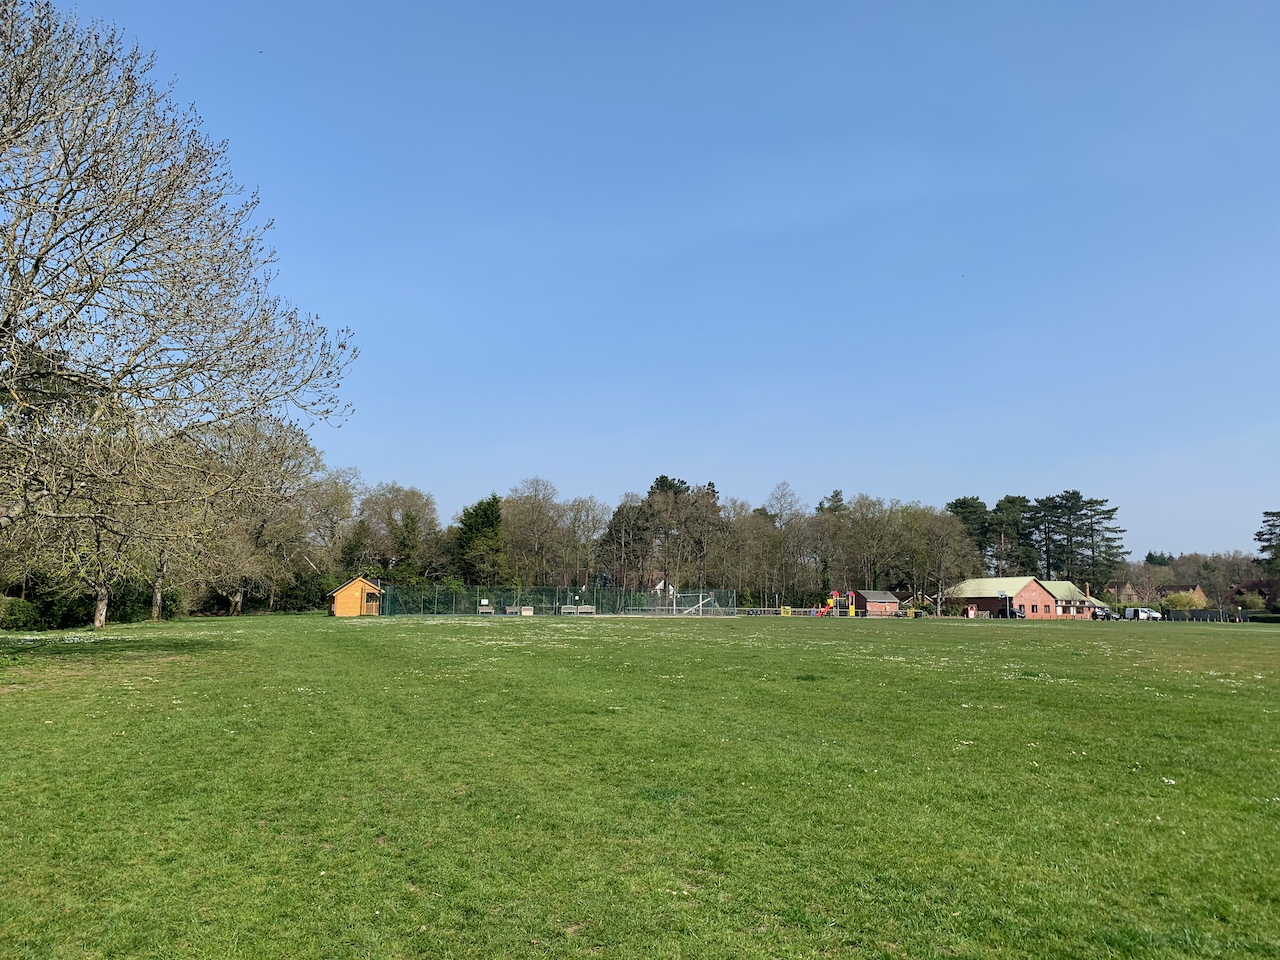 The big grass recreation ground with the tennis courts in the far distance.